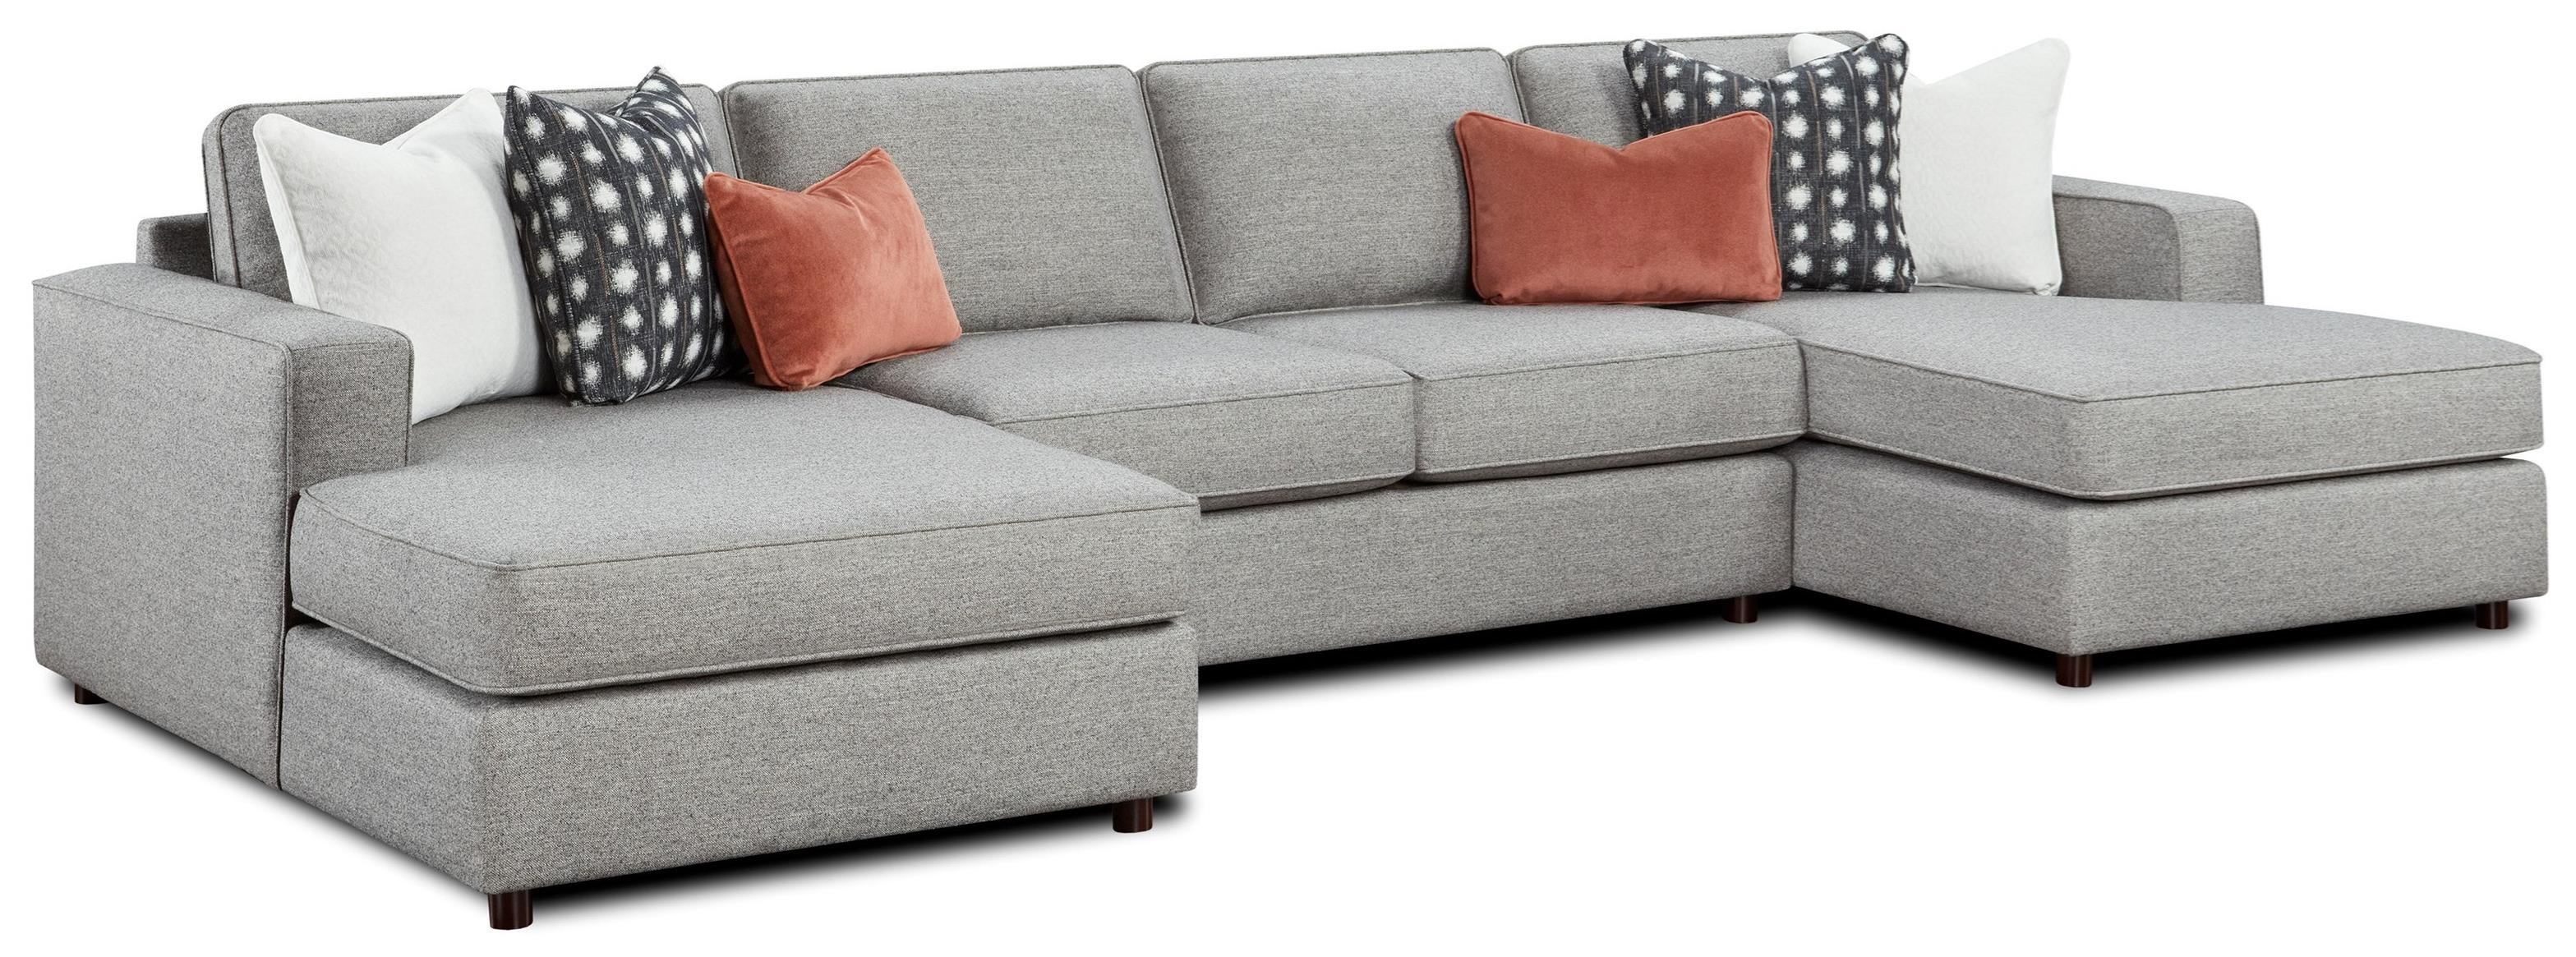 2061 3-Piece Dual Chaise Sectional by Fusion Furniture at Prime Brothers Furniture